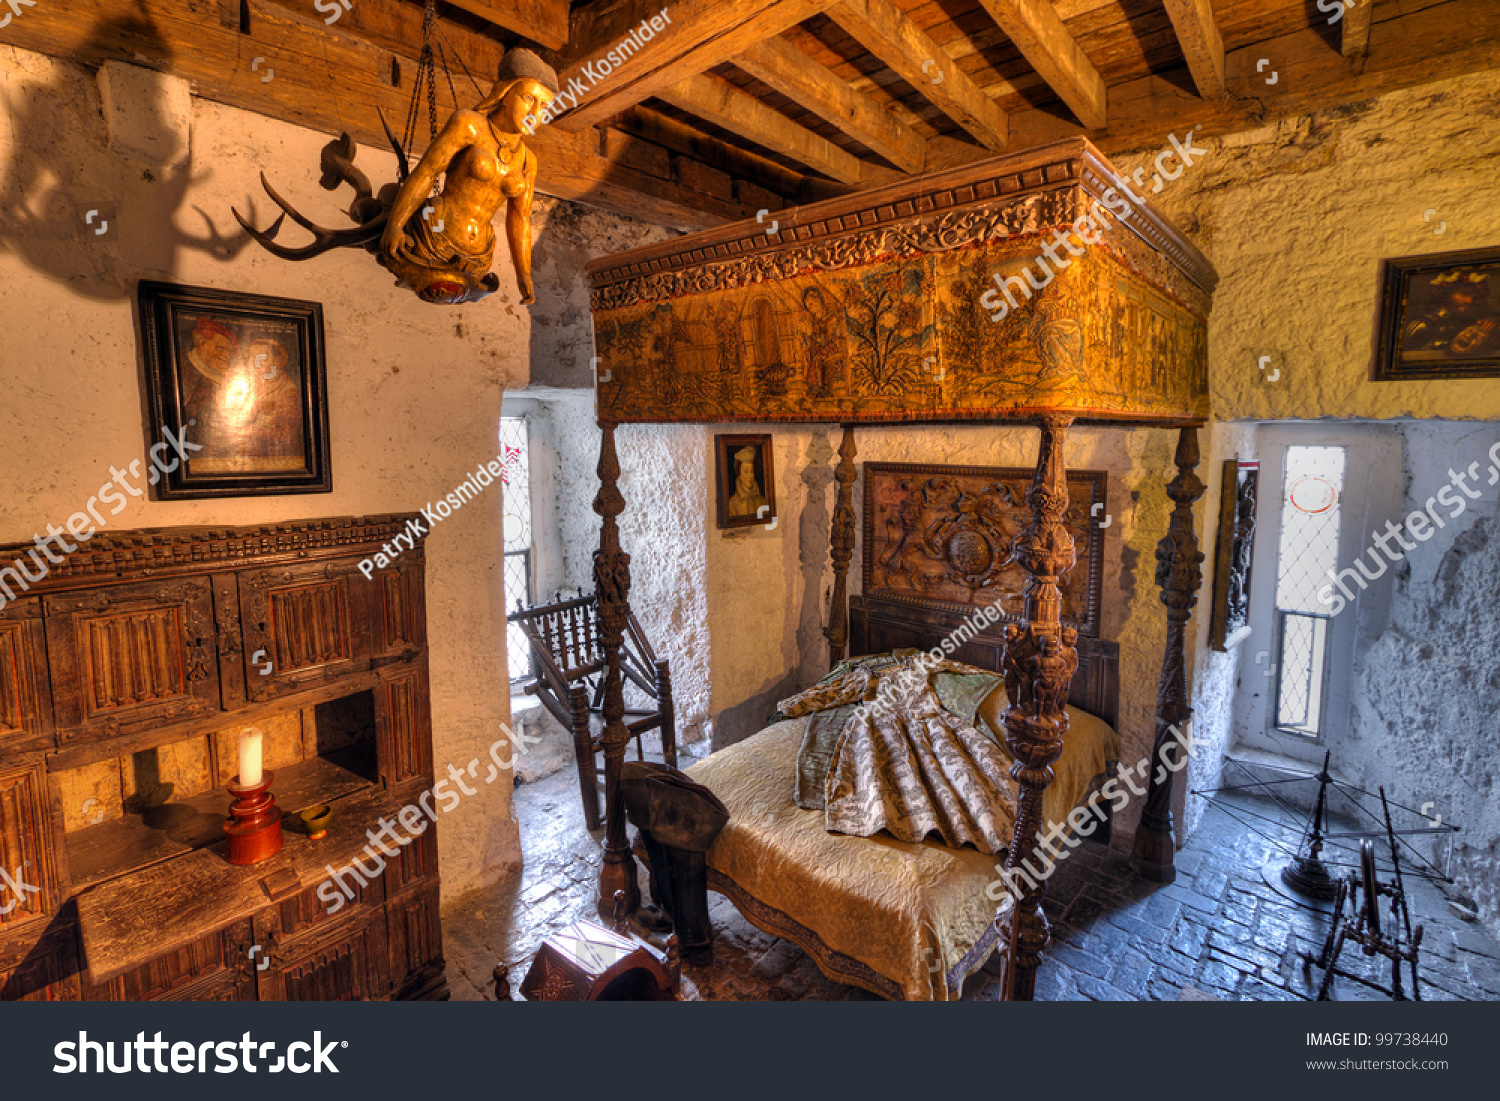 bunratty ireland feb 19 ancient bedroom stock photo 99738440